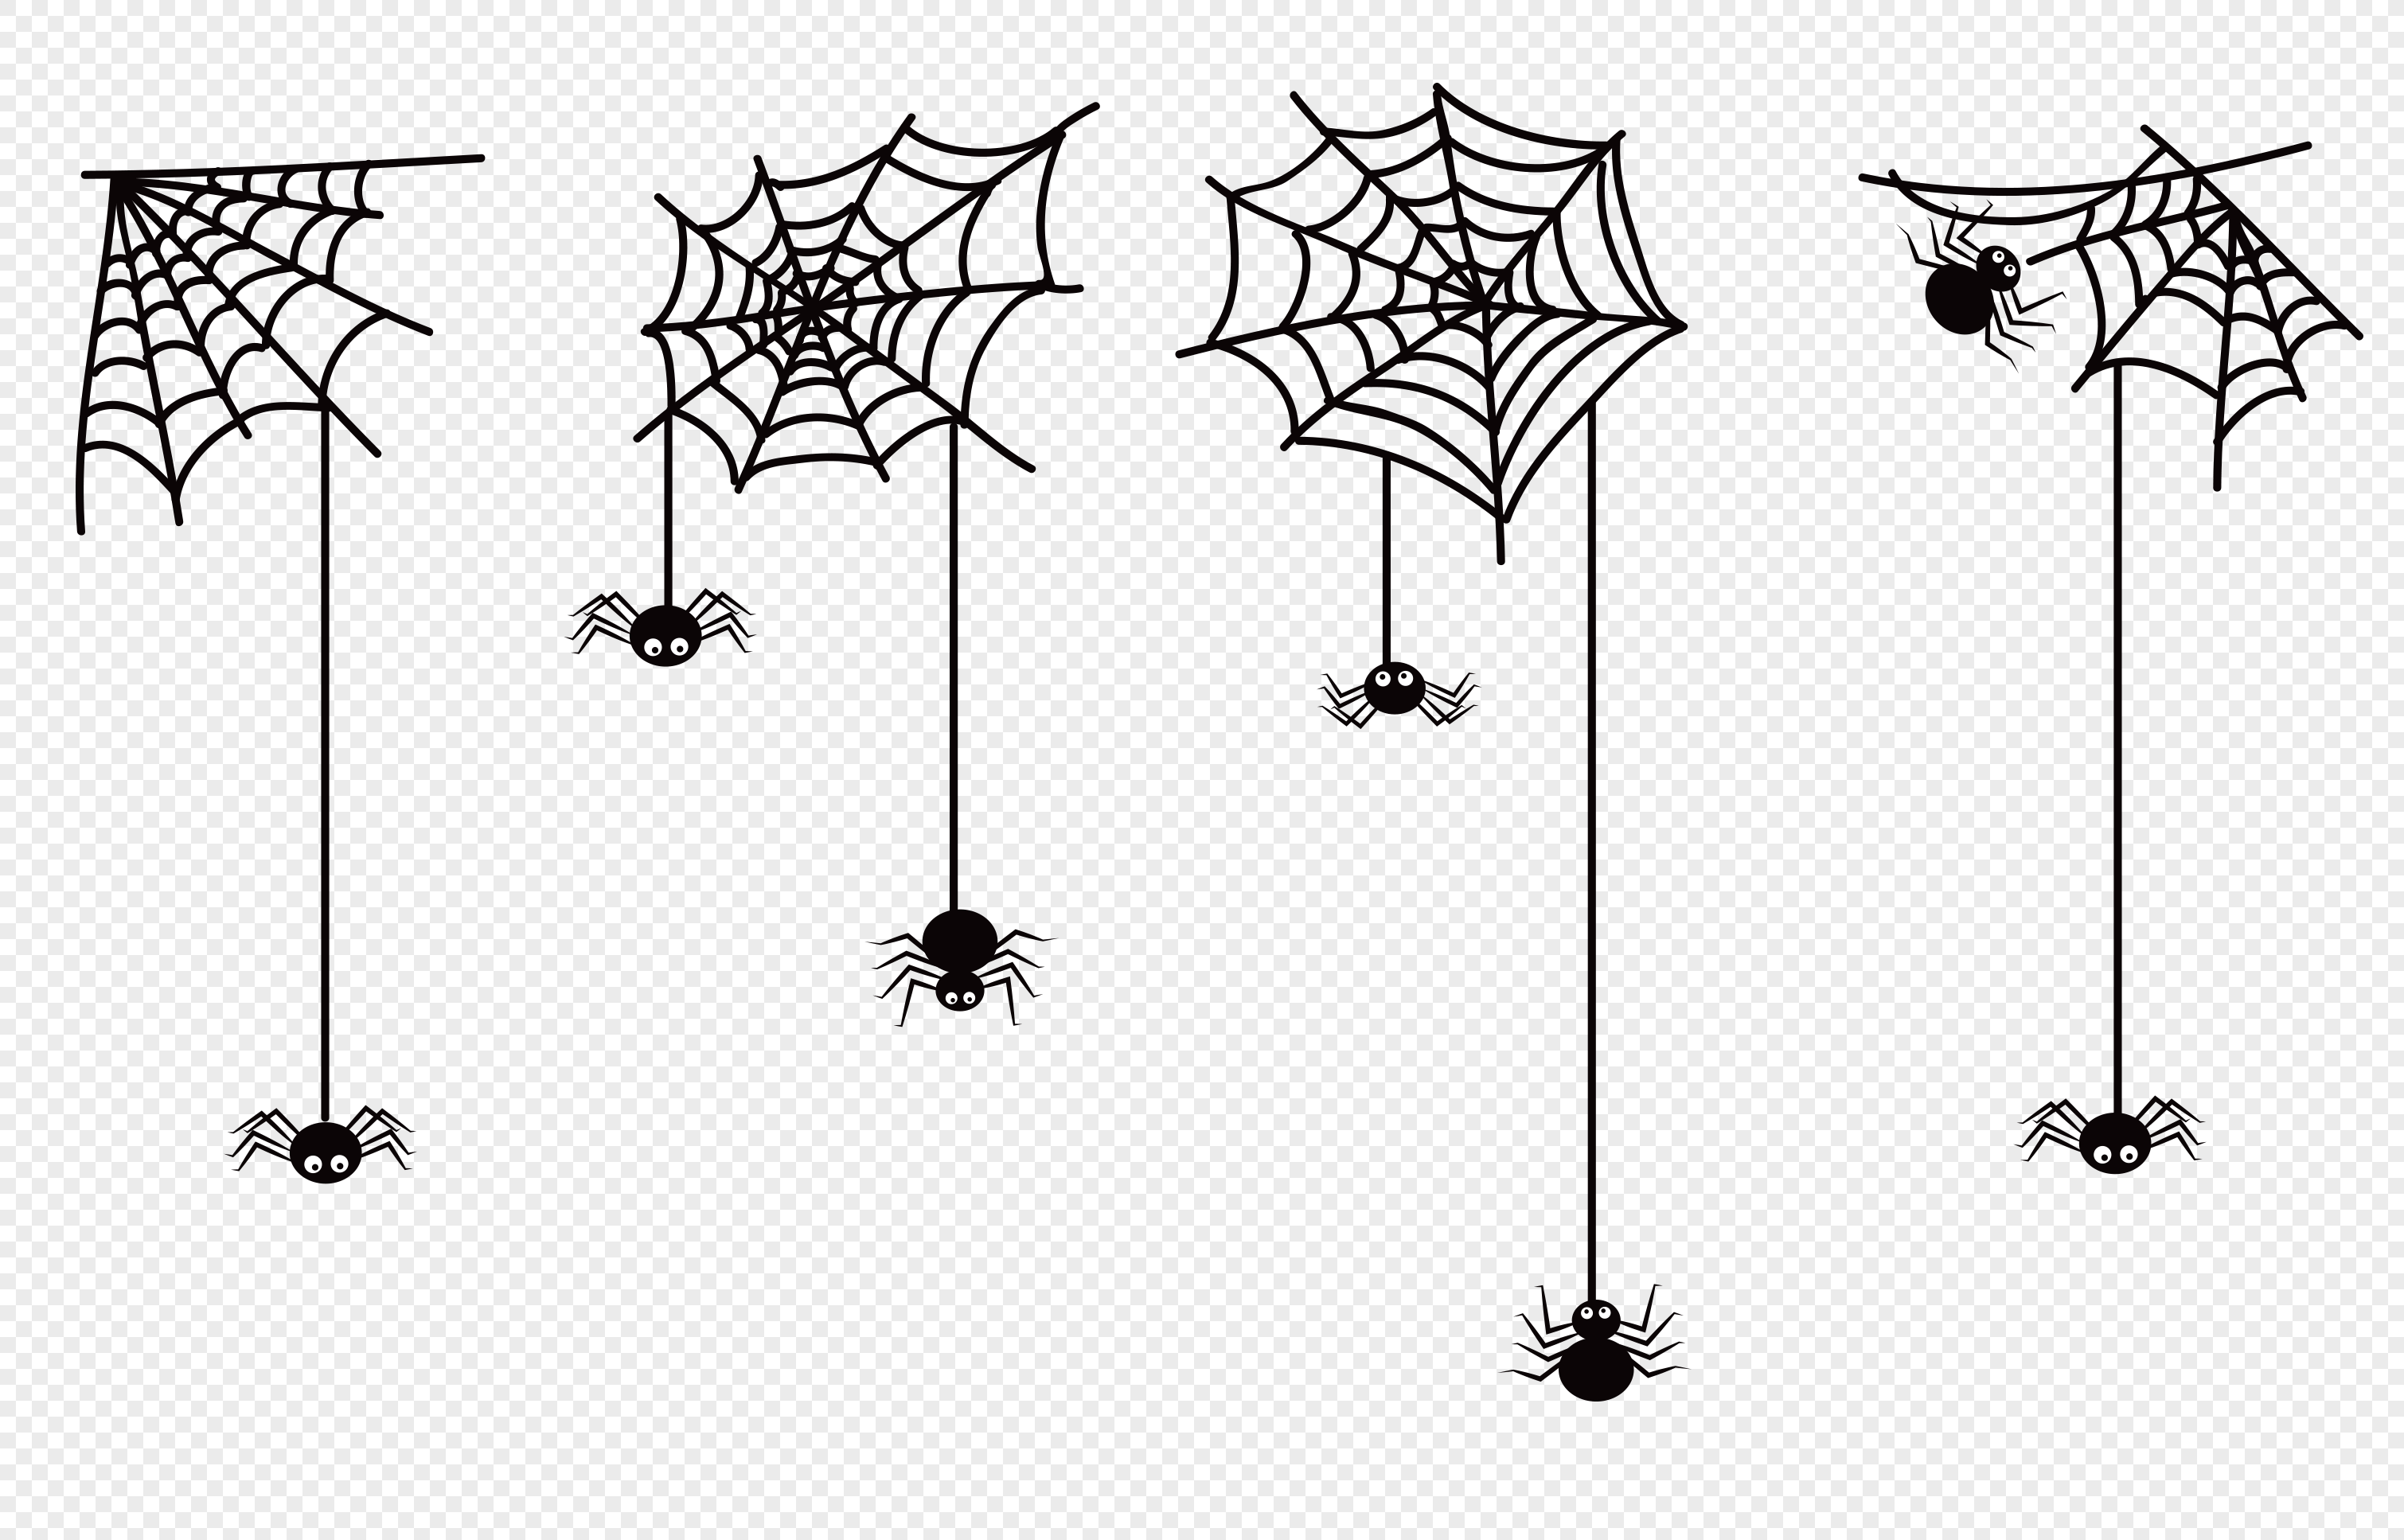 halloween spider web png image_picture free download